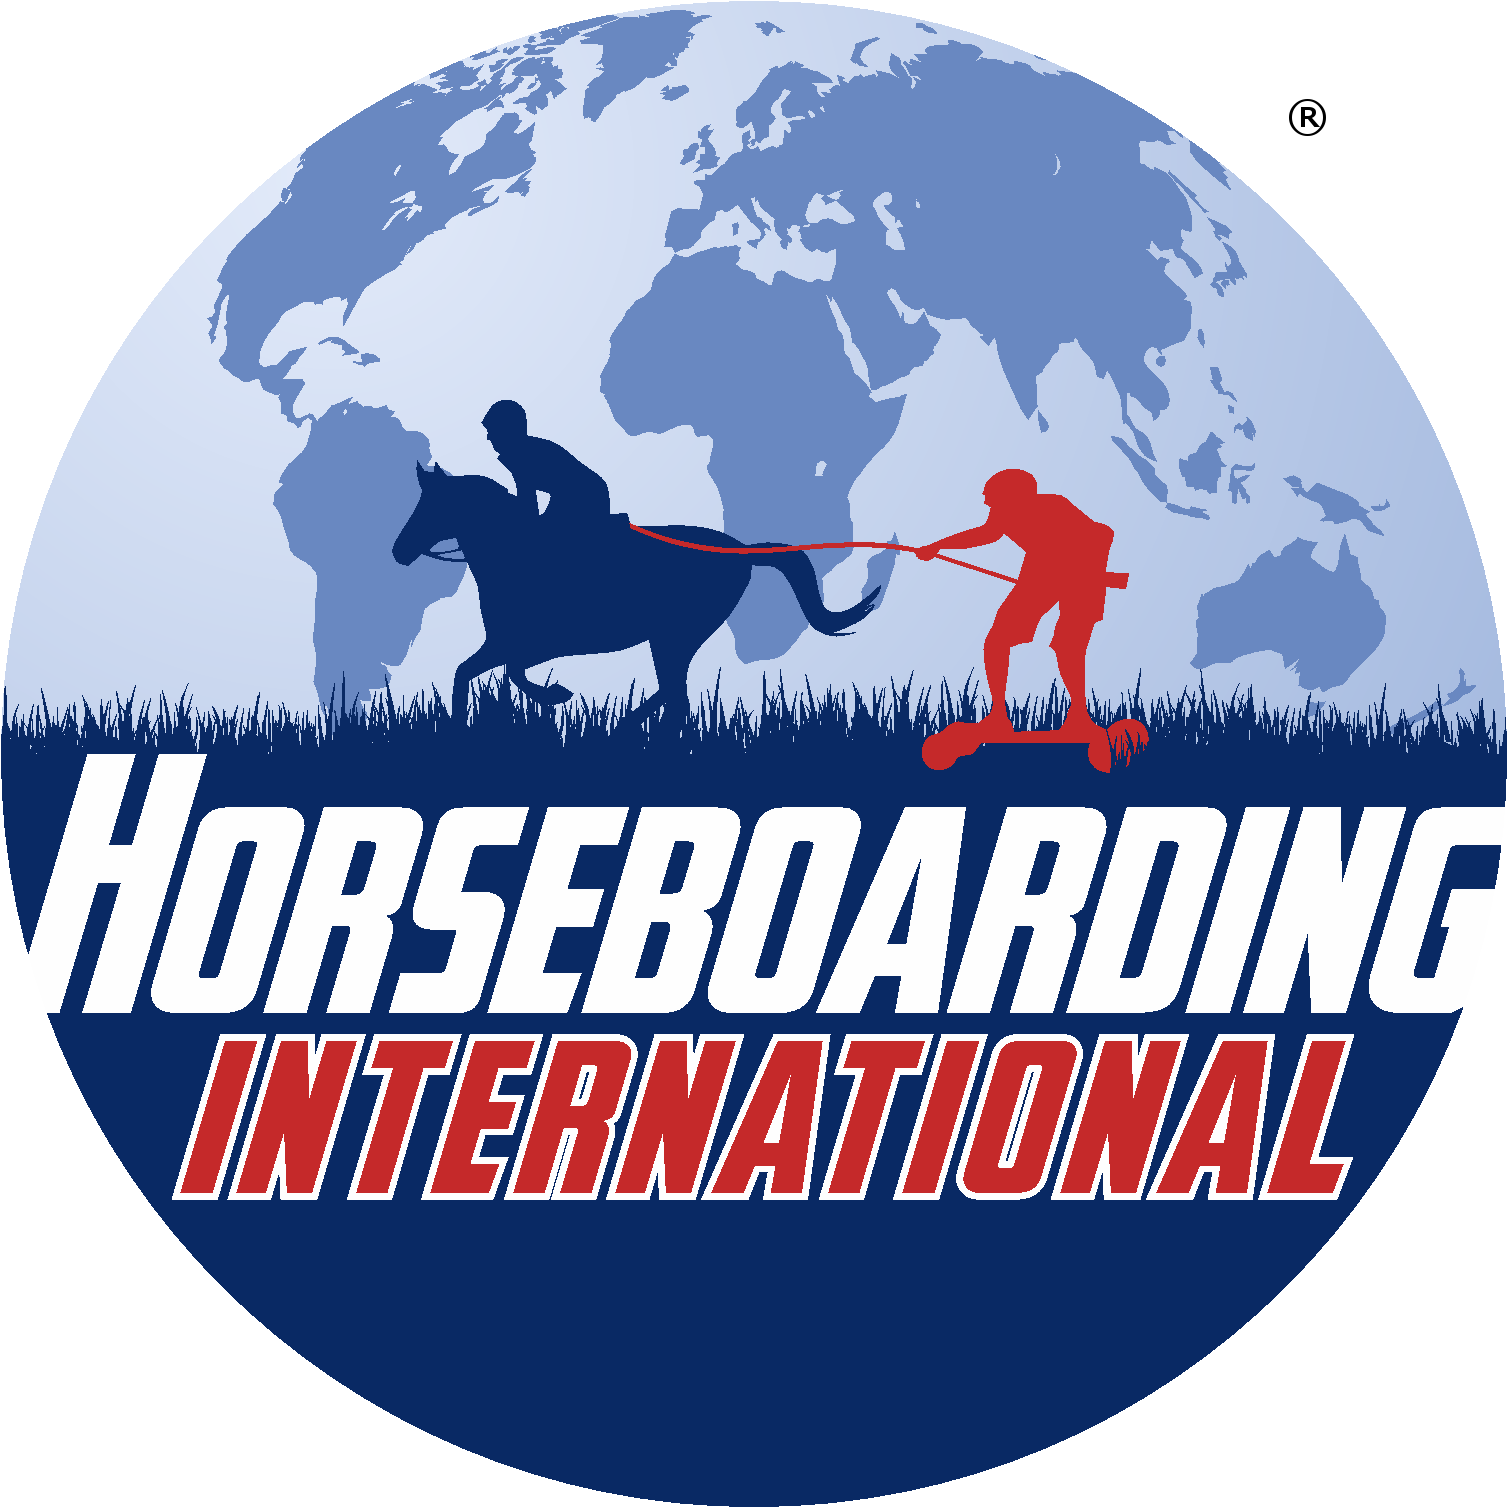 Horseboarding-International-TM.png